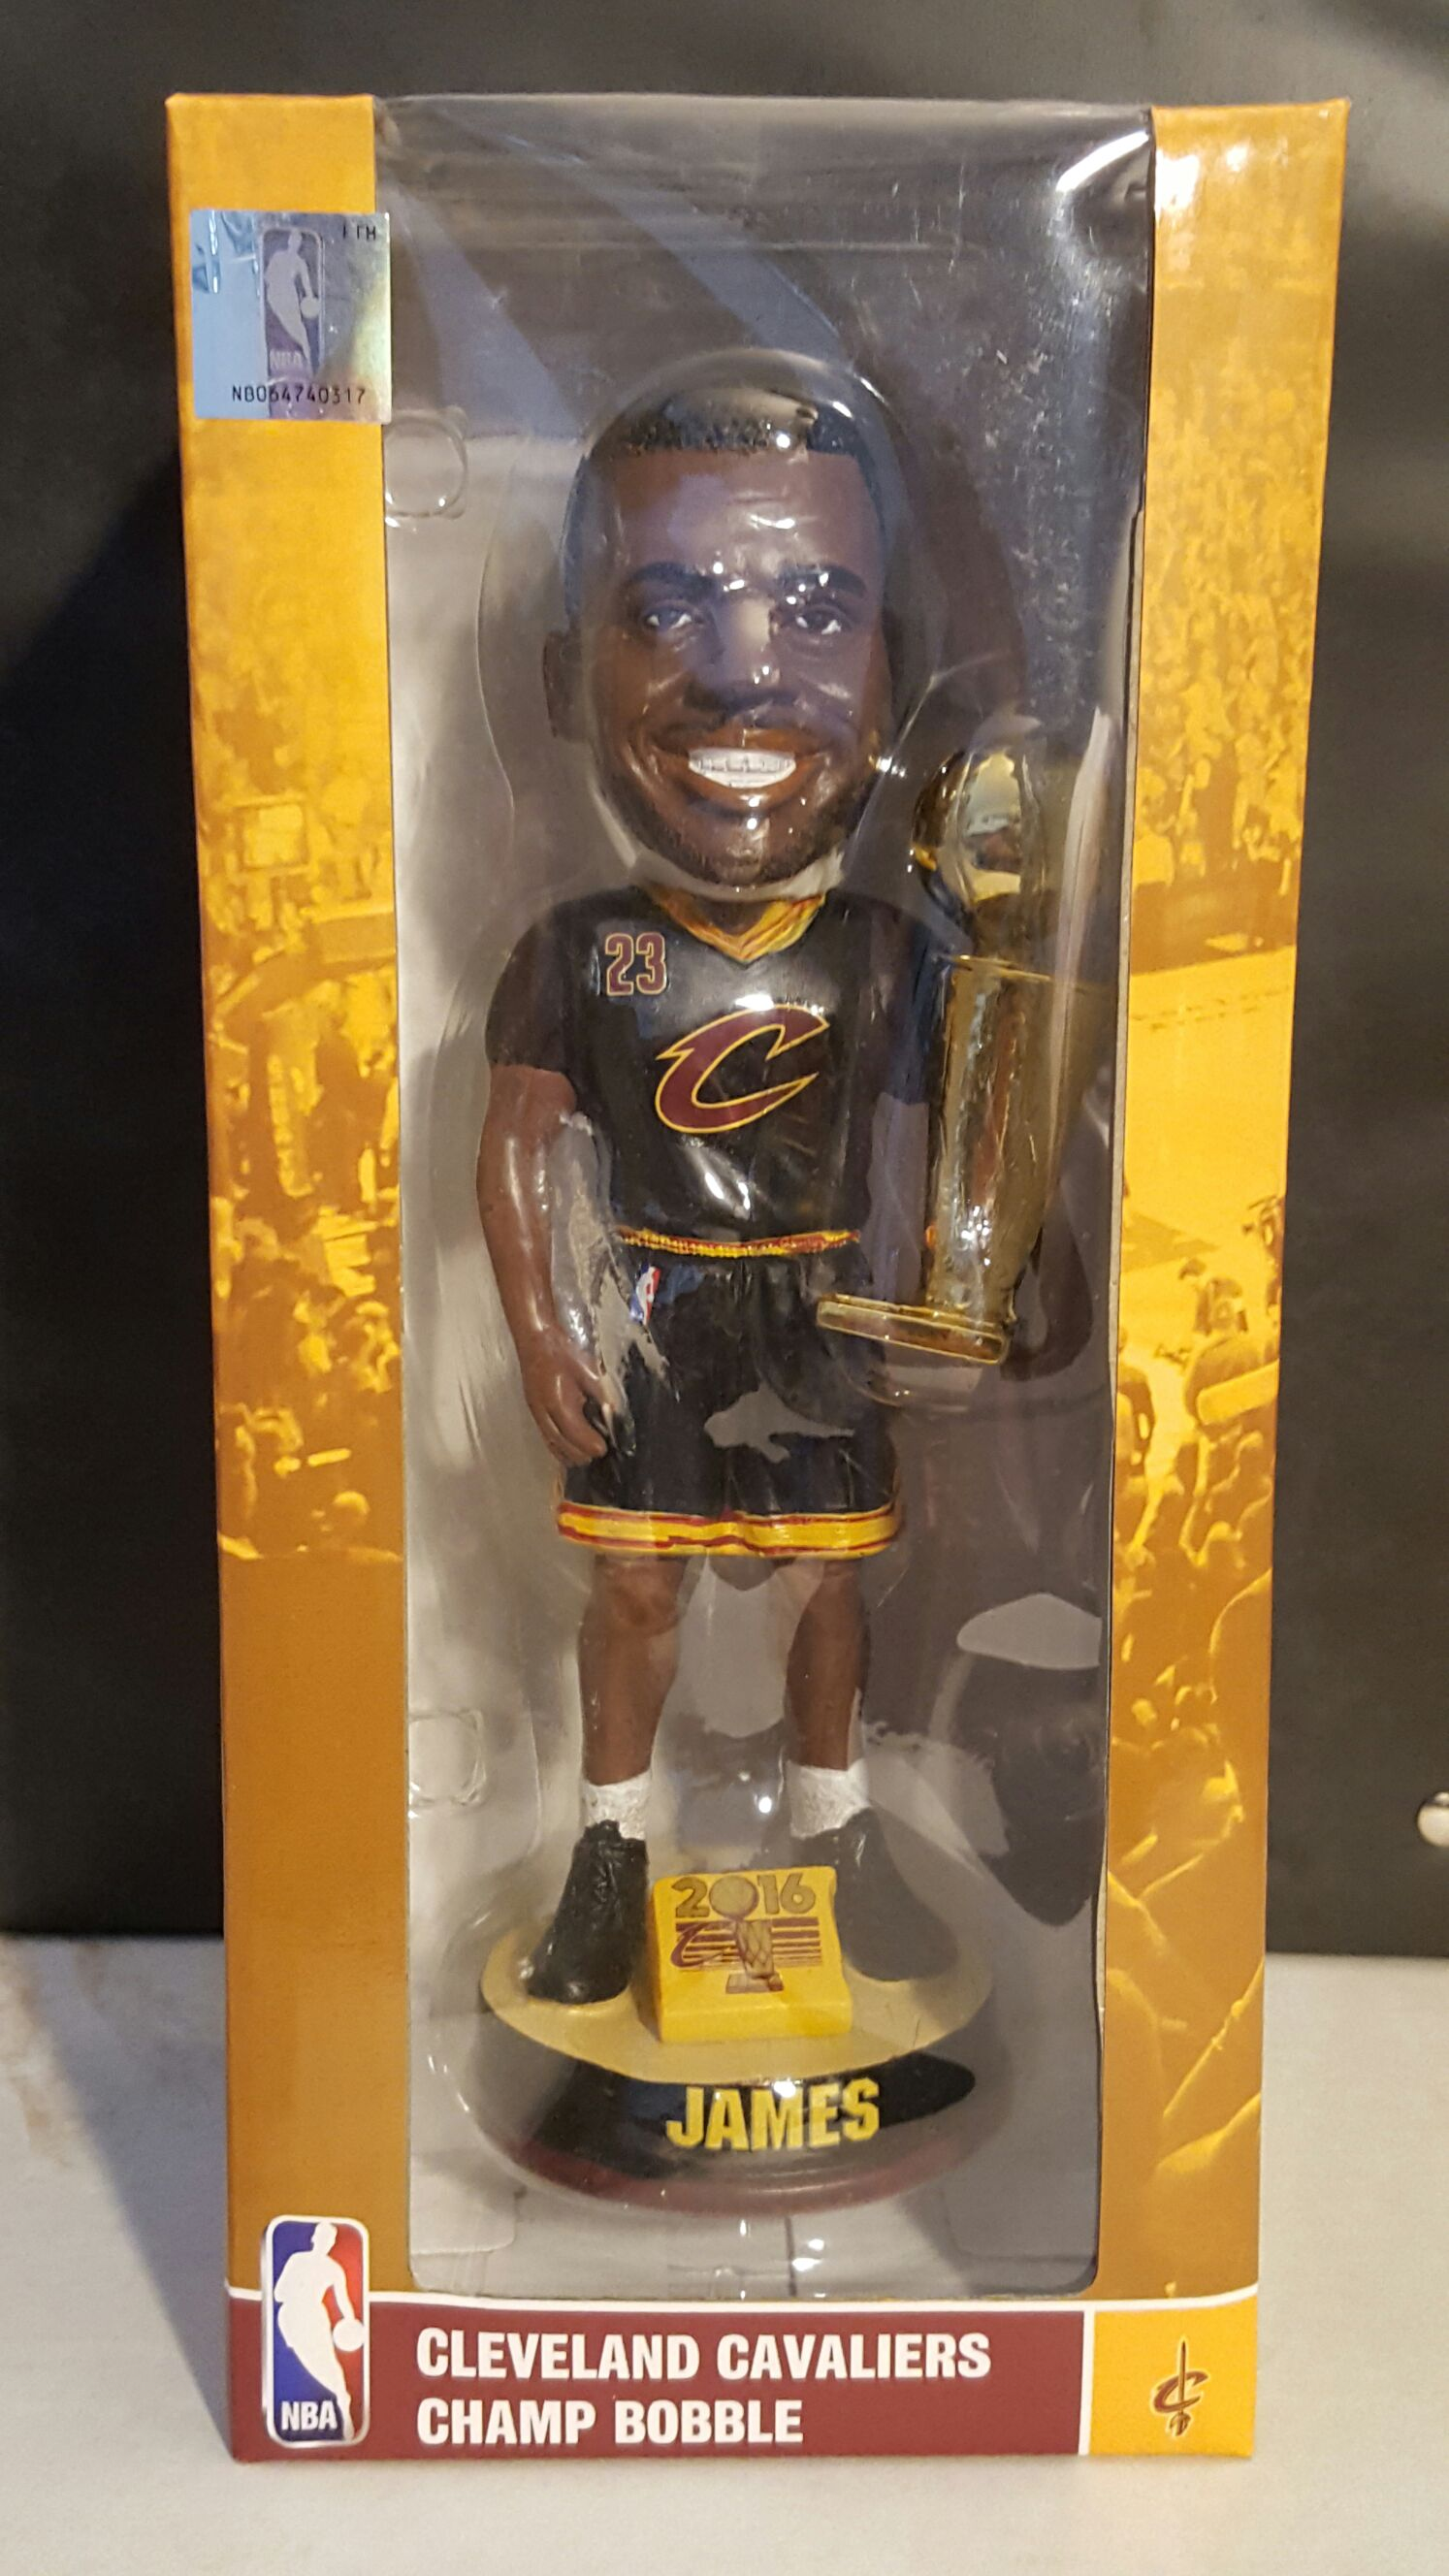 Lebron James Bobblehead - Basketball (2016) back image (back cover, second image)